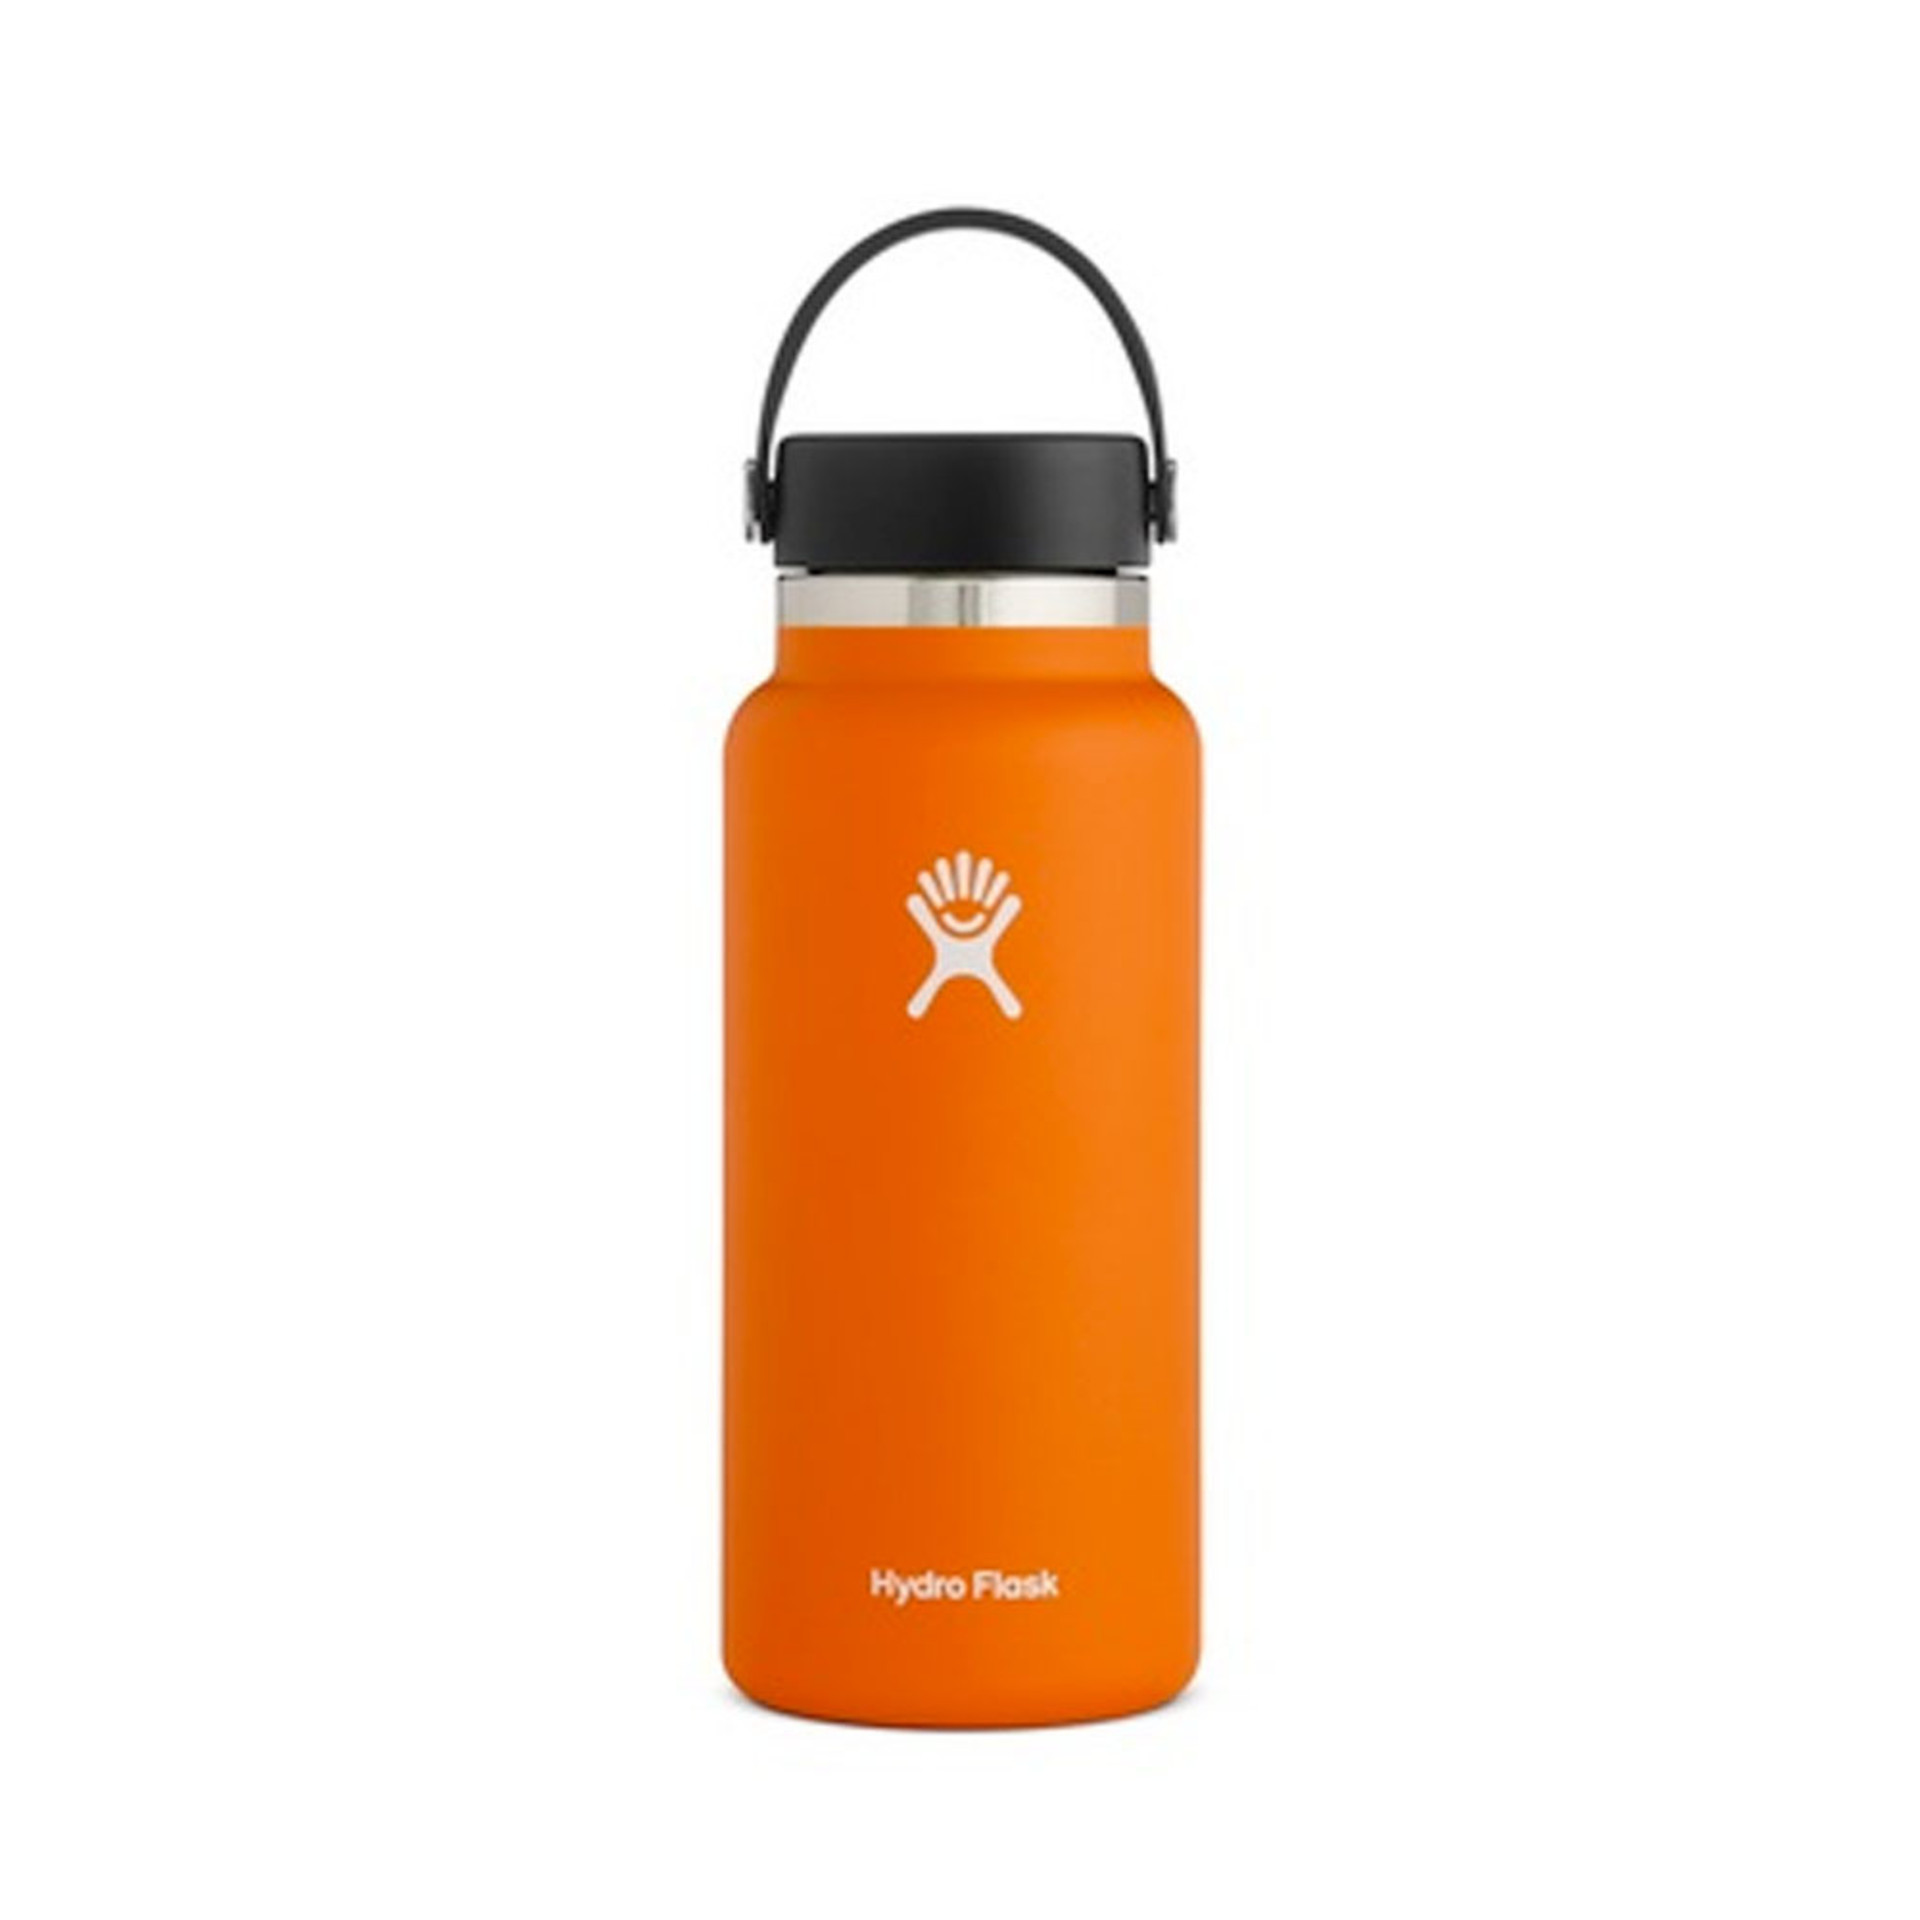 Hydro Flask Water Bottle 32oz Wide Mouth – Orange Zest